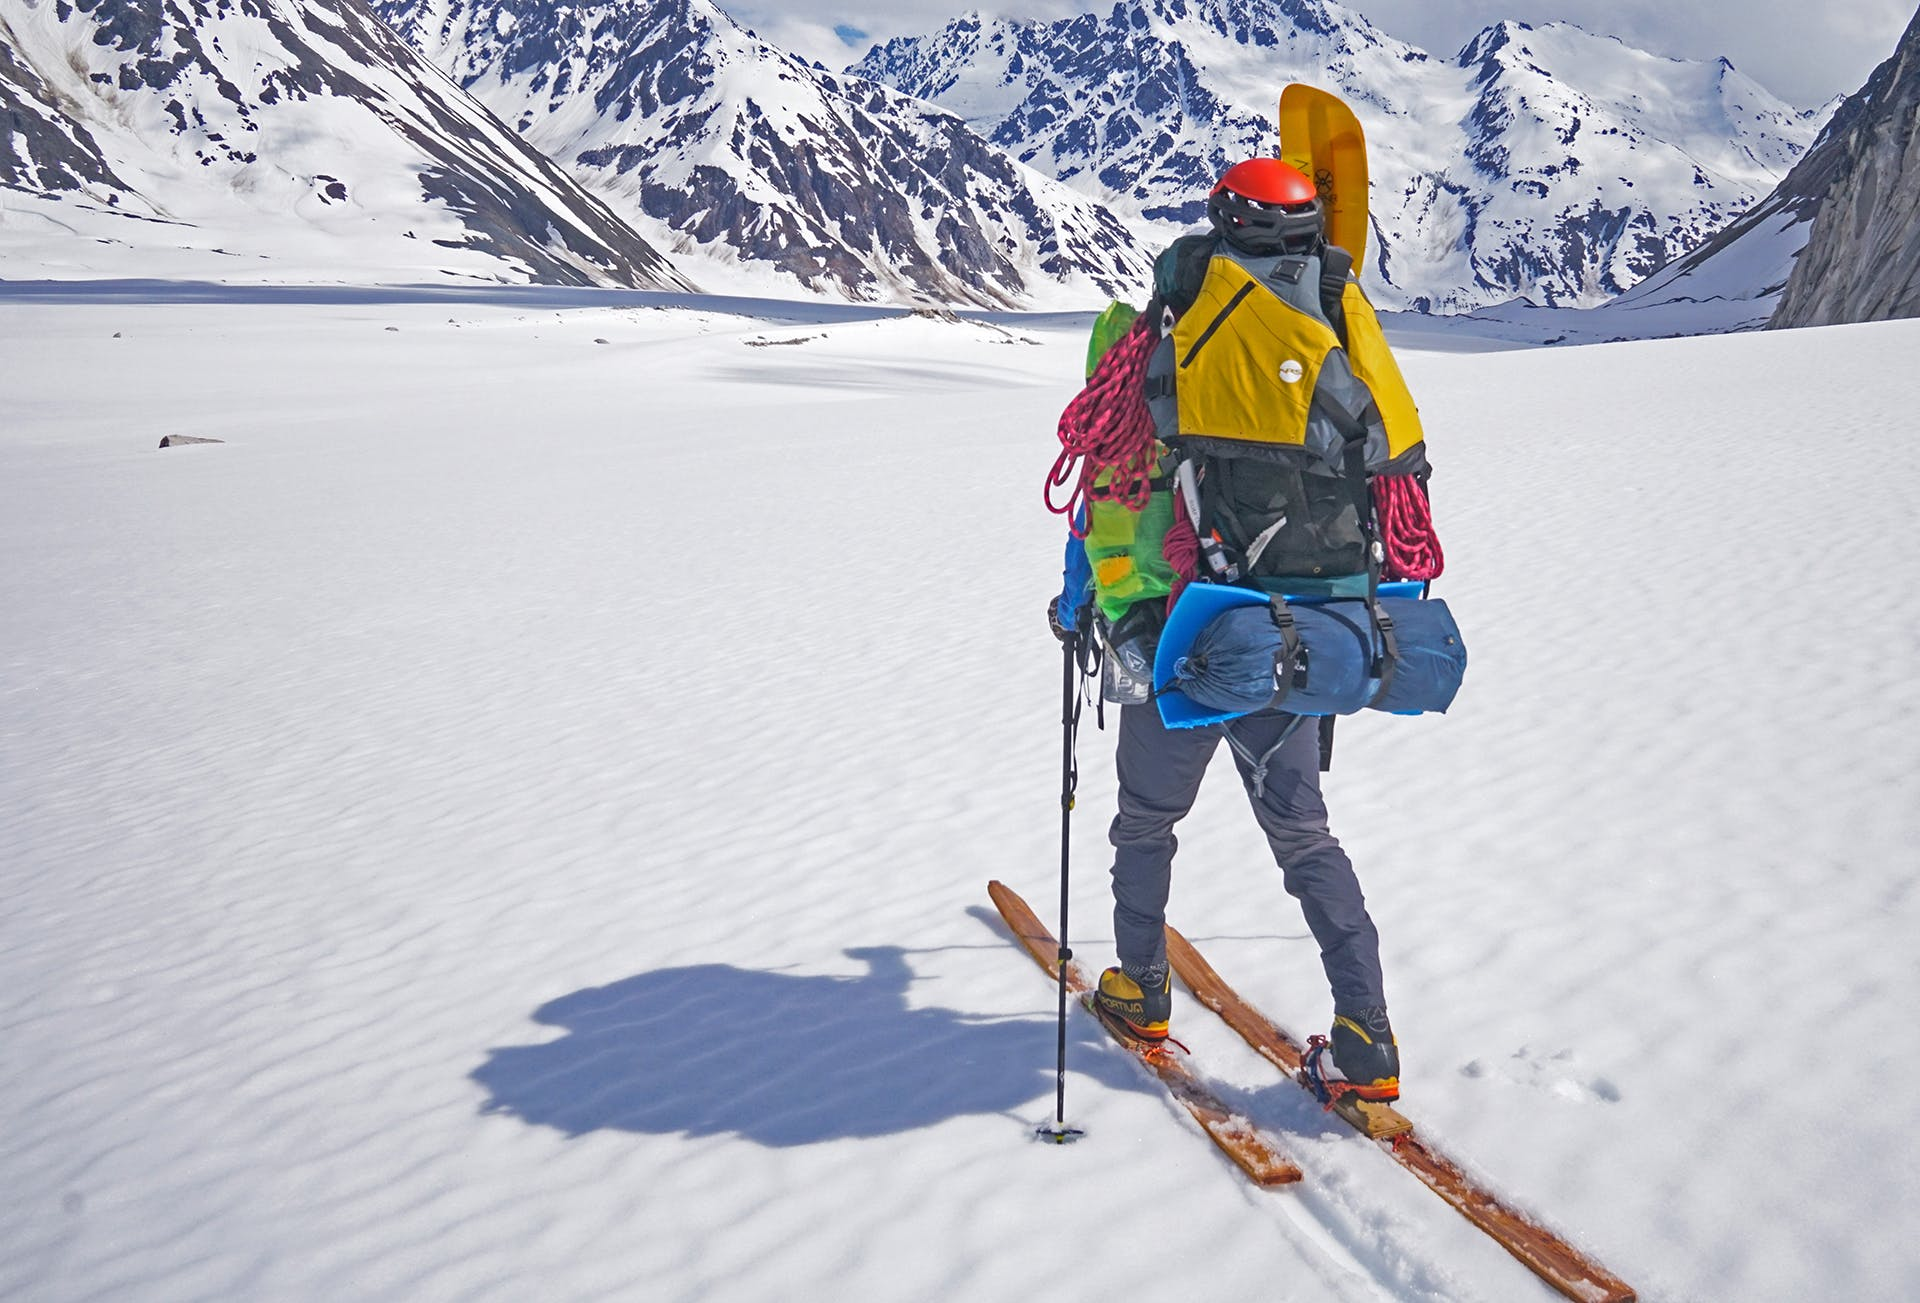 """""""We established a base camp and explored climbing routes on neighboring peaks, including two attempts on the NW Ridge of Citadel Peak, two new rock routes and an additional attempted route on Dogtooth Spire on Peak 7235."""""""